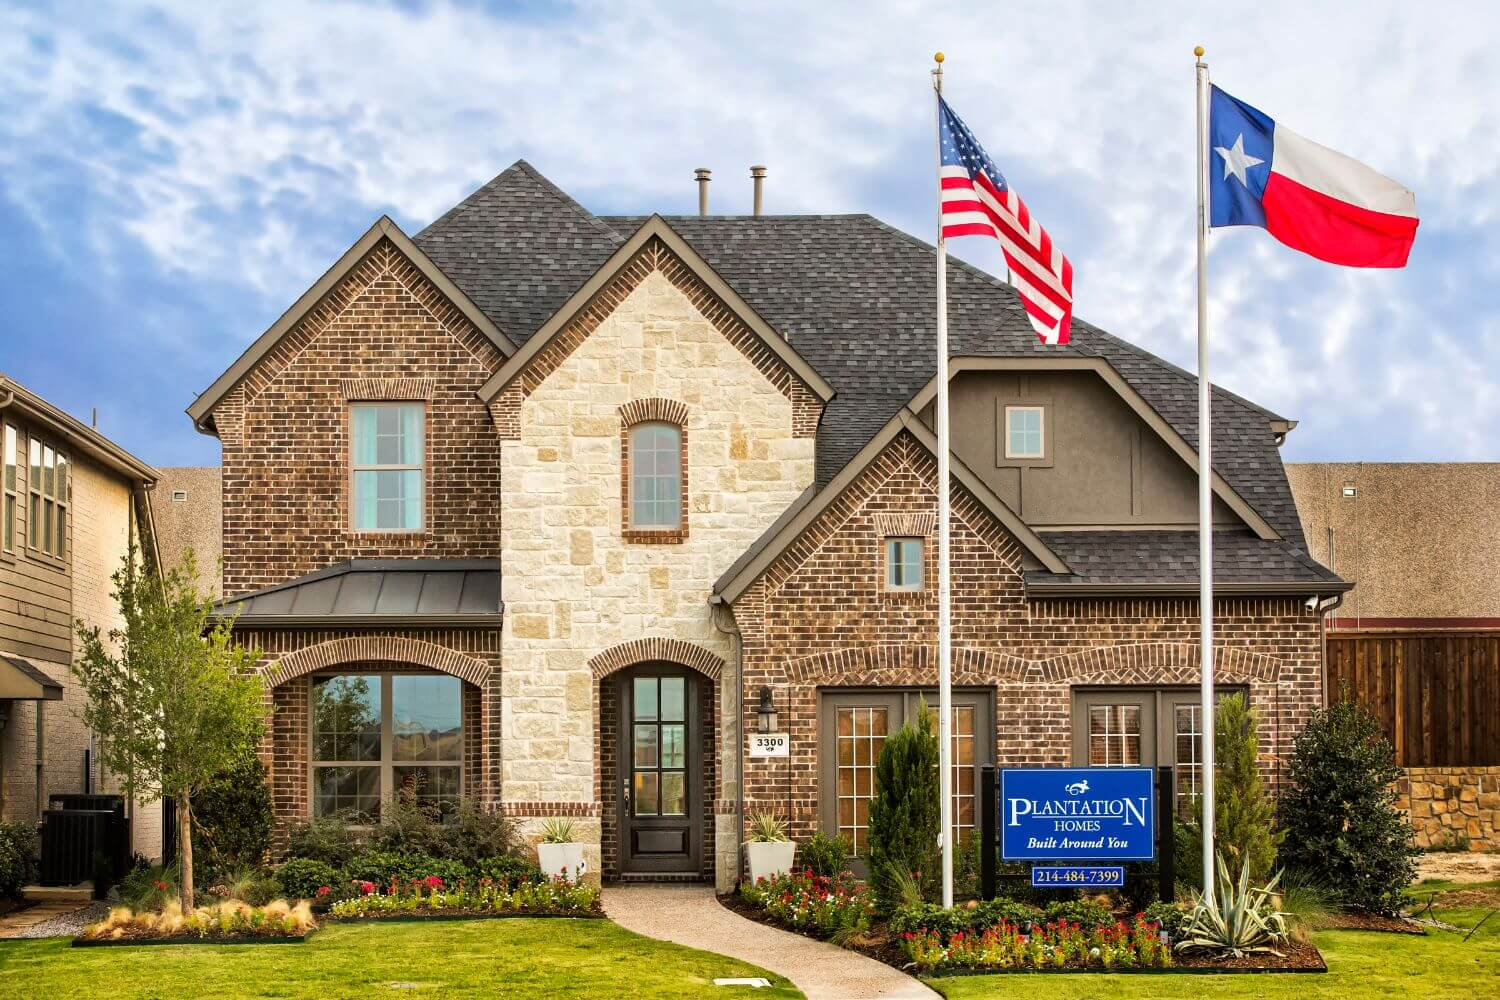 Available New Homes for Sale in Dallas and Fort Worth, TX ... on home insurance companies, home insurance quotes, home insurance logos,